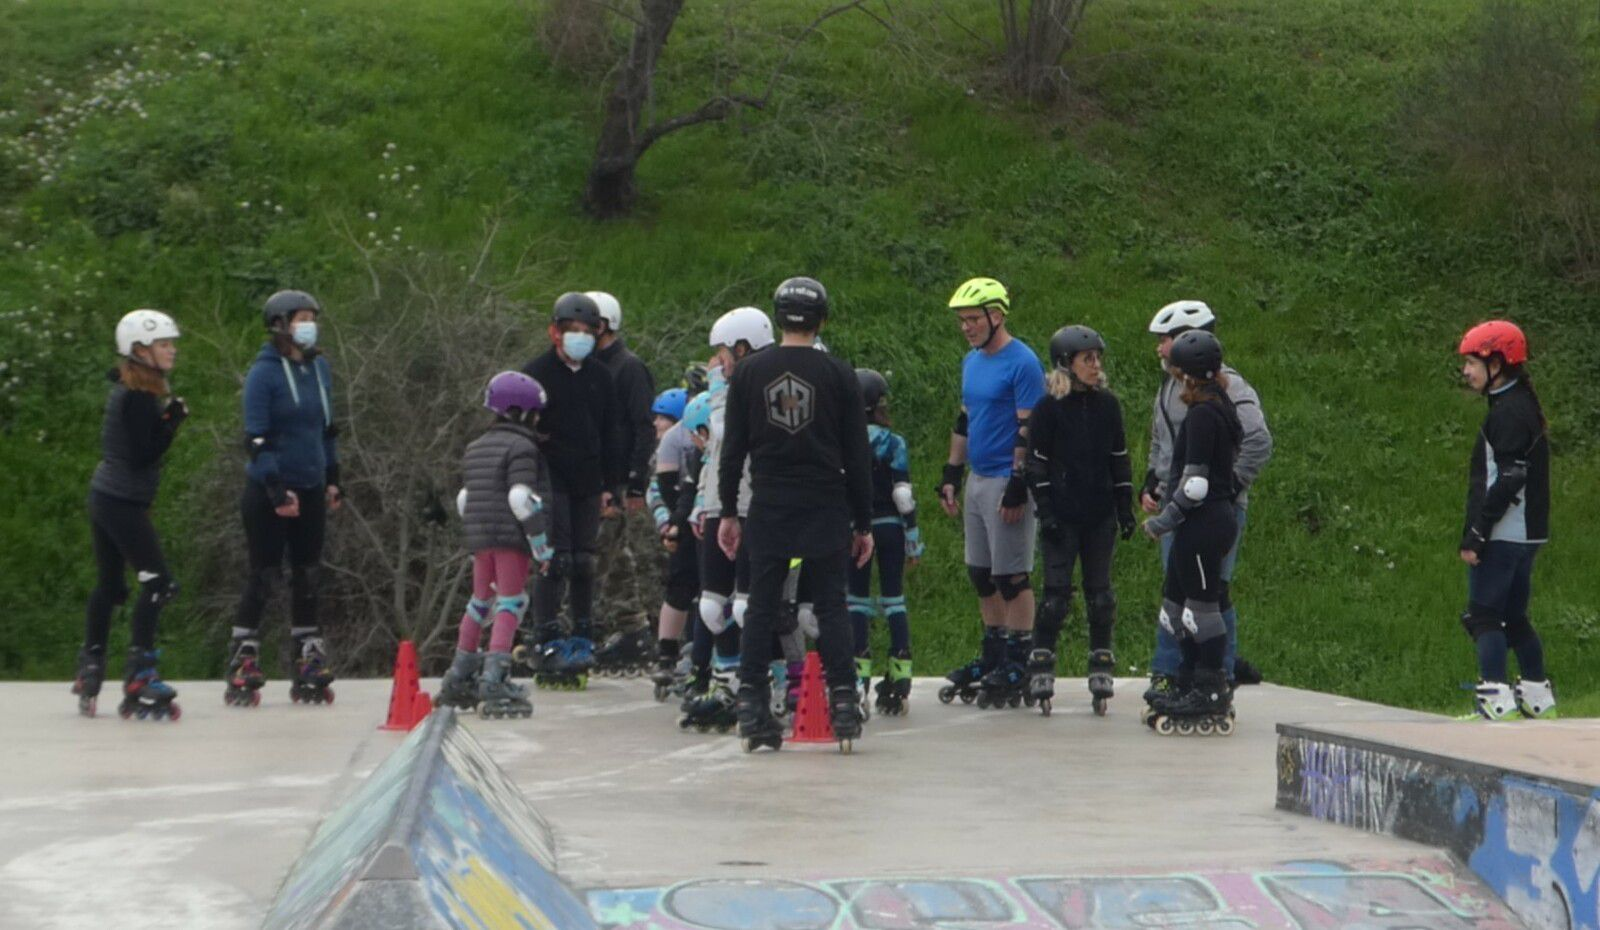 Clic n roll, magasin, roller, trottinette, quad, skateboard, casque, protection, nimes,